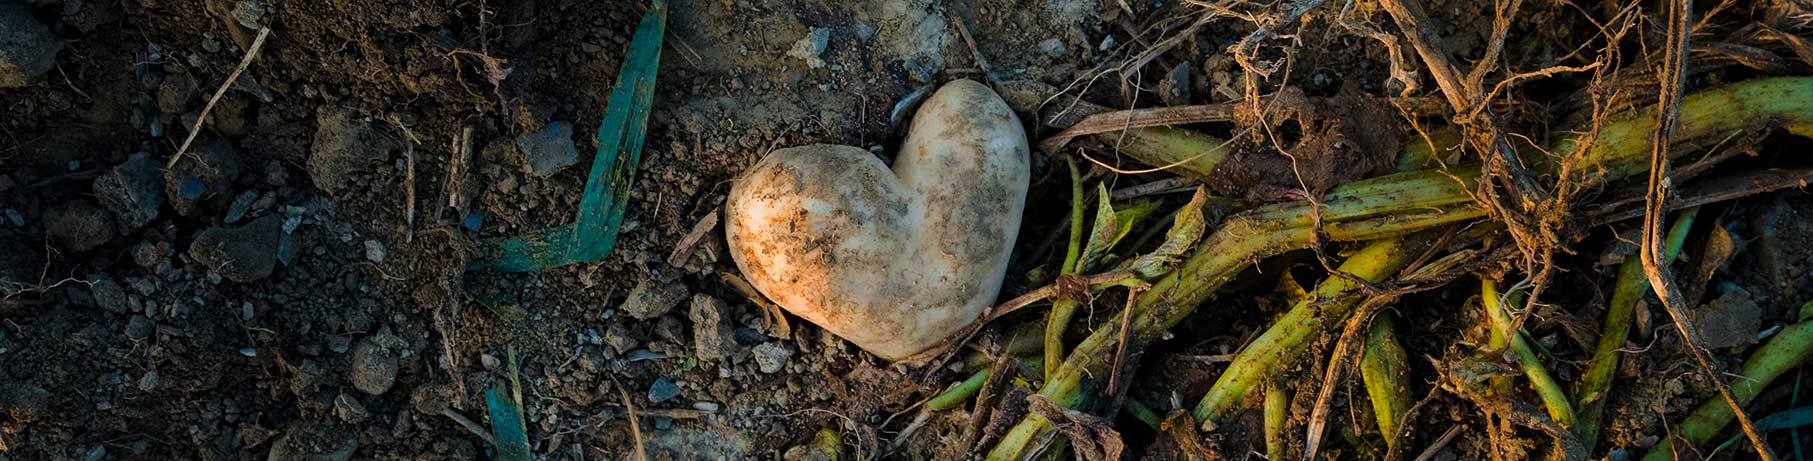 Heart shaped potato in farmer's field